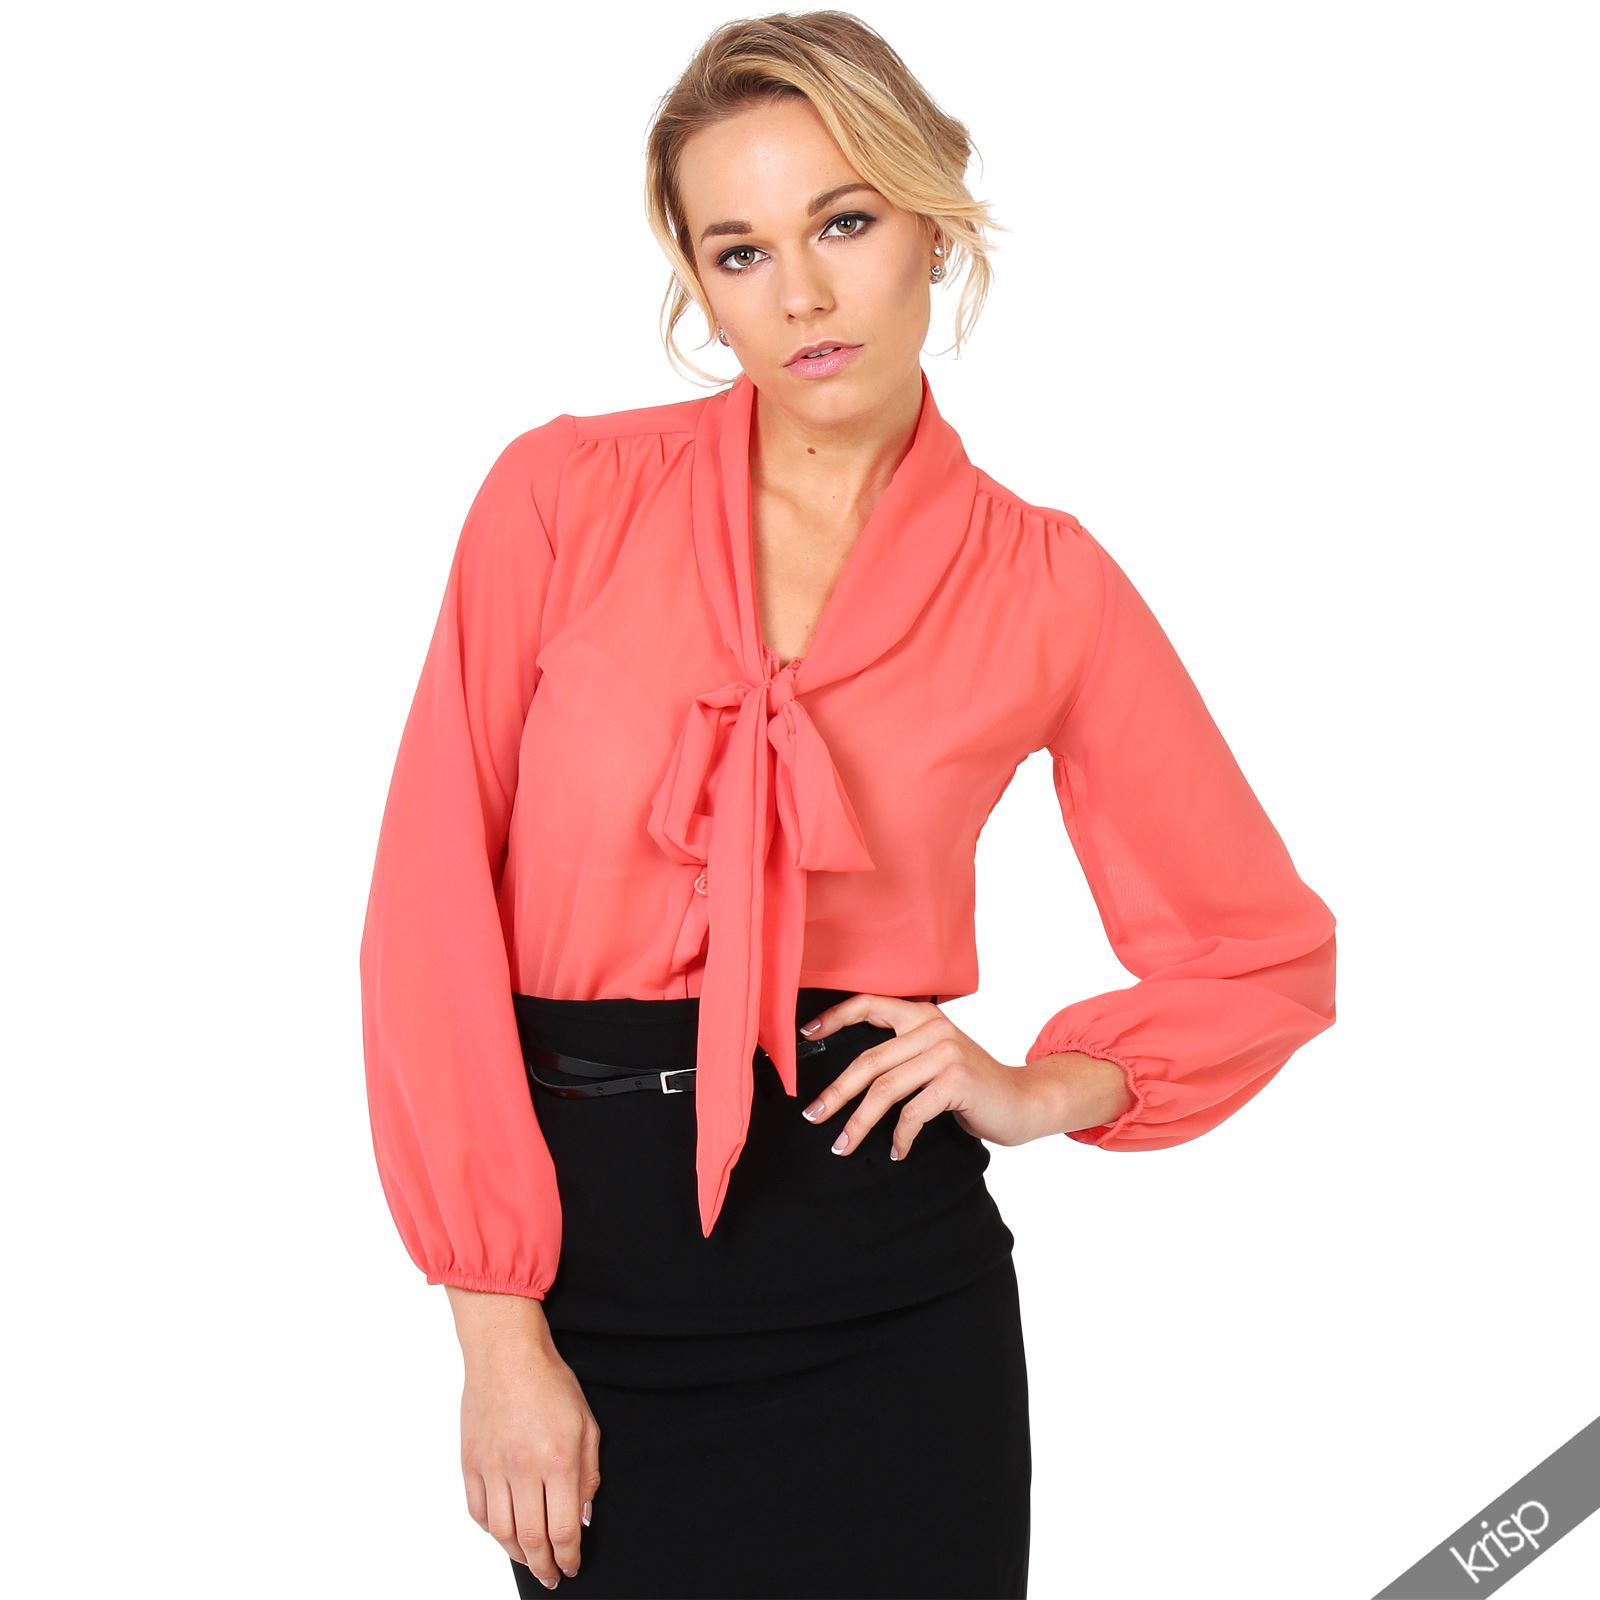 Women's Chiffon Blouses. invalid category id. Women's Chiffon Blouses. Sexy V Neck Loose Long Sleeve Chiffon Shirt Pocket Top Plus Size Women Blouse. Product Image. Price $ Items sold by getson.ga that are marked eligible on the product and checkout page with the logo ;.